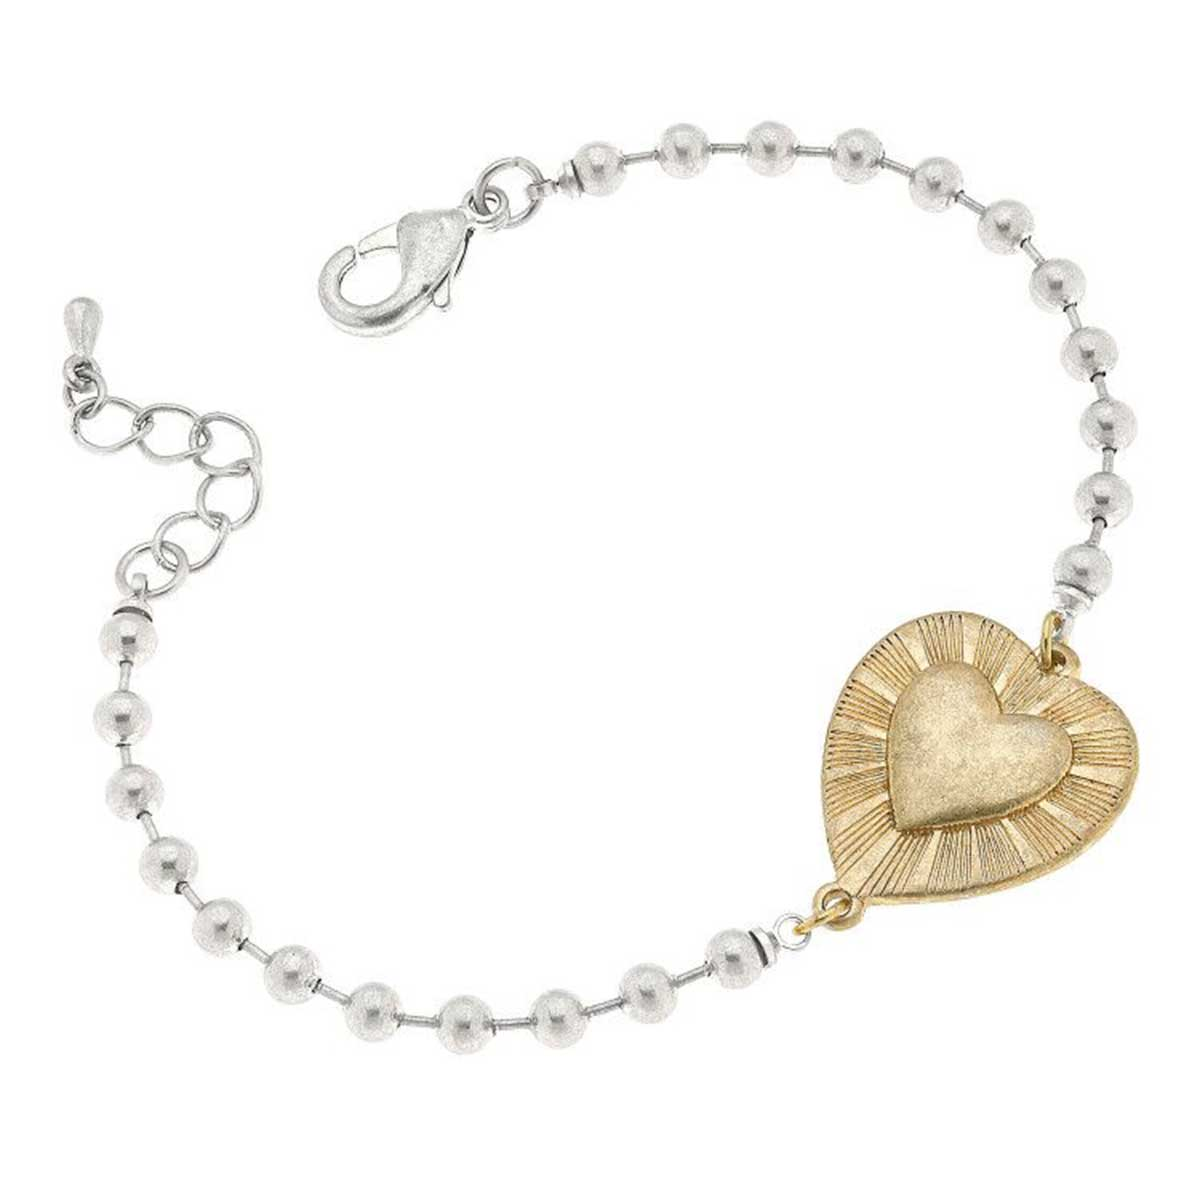 Grace Heart Ball Chain Bracelet in Worn Silver